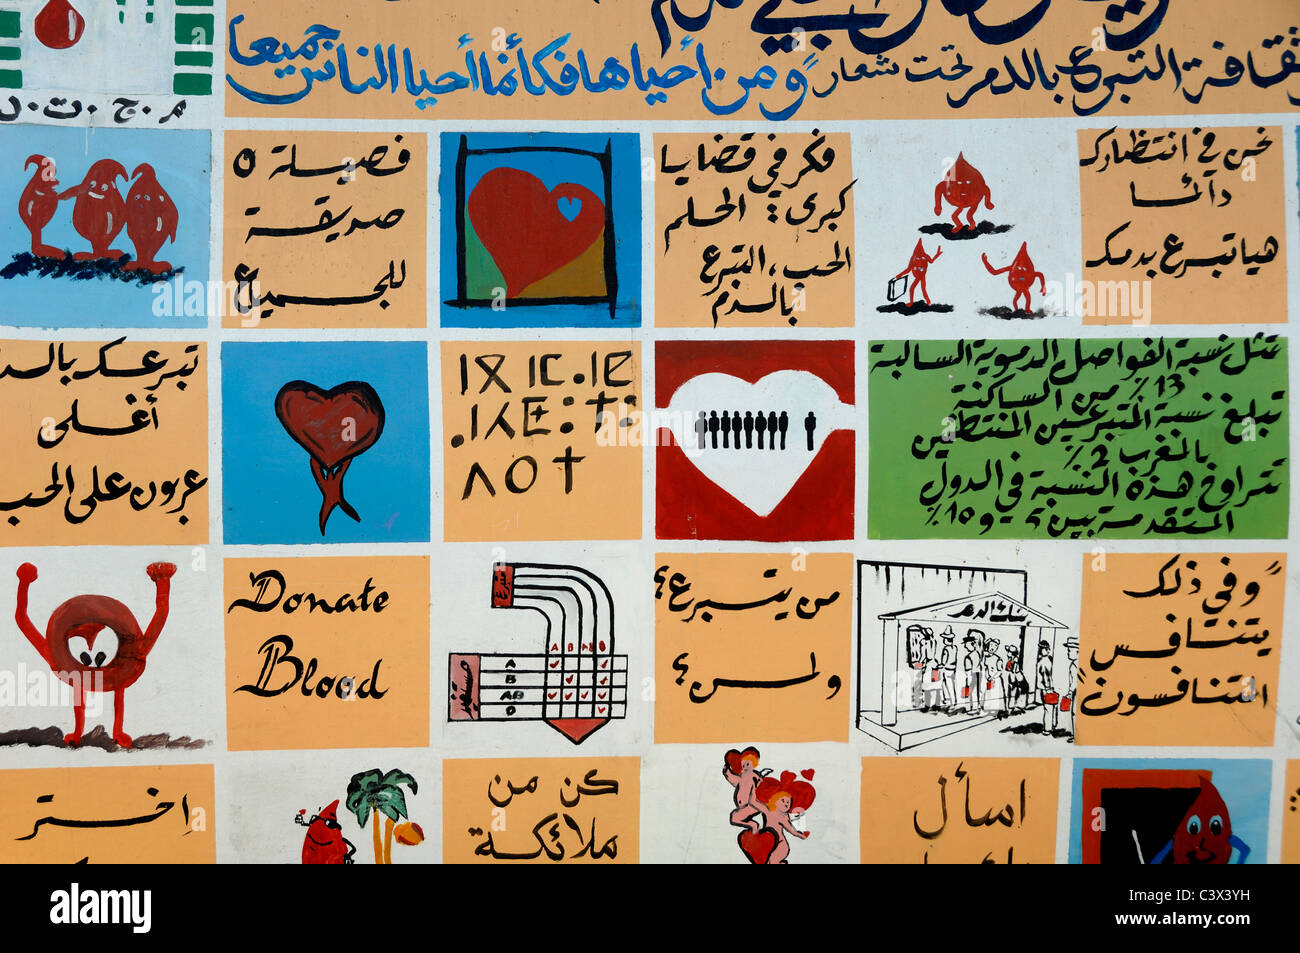 Arabic Blood Donor Advert, Sign or Hoarding Meknes Morocco - Stock Image